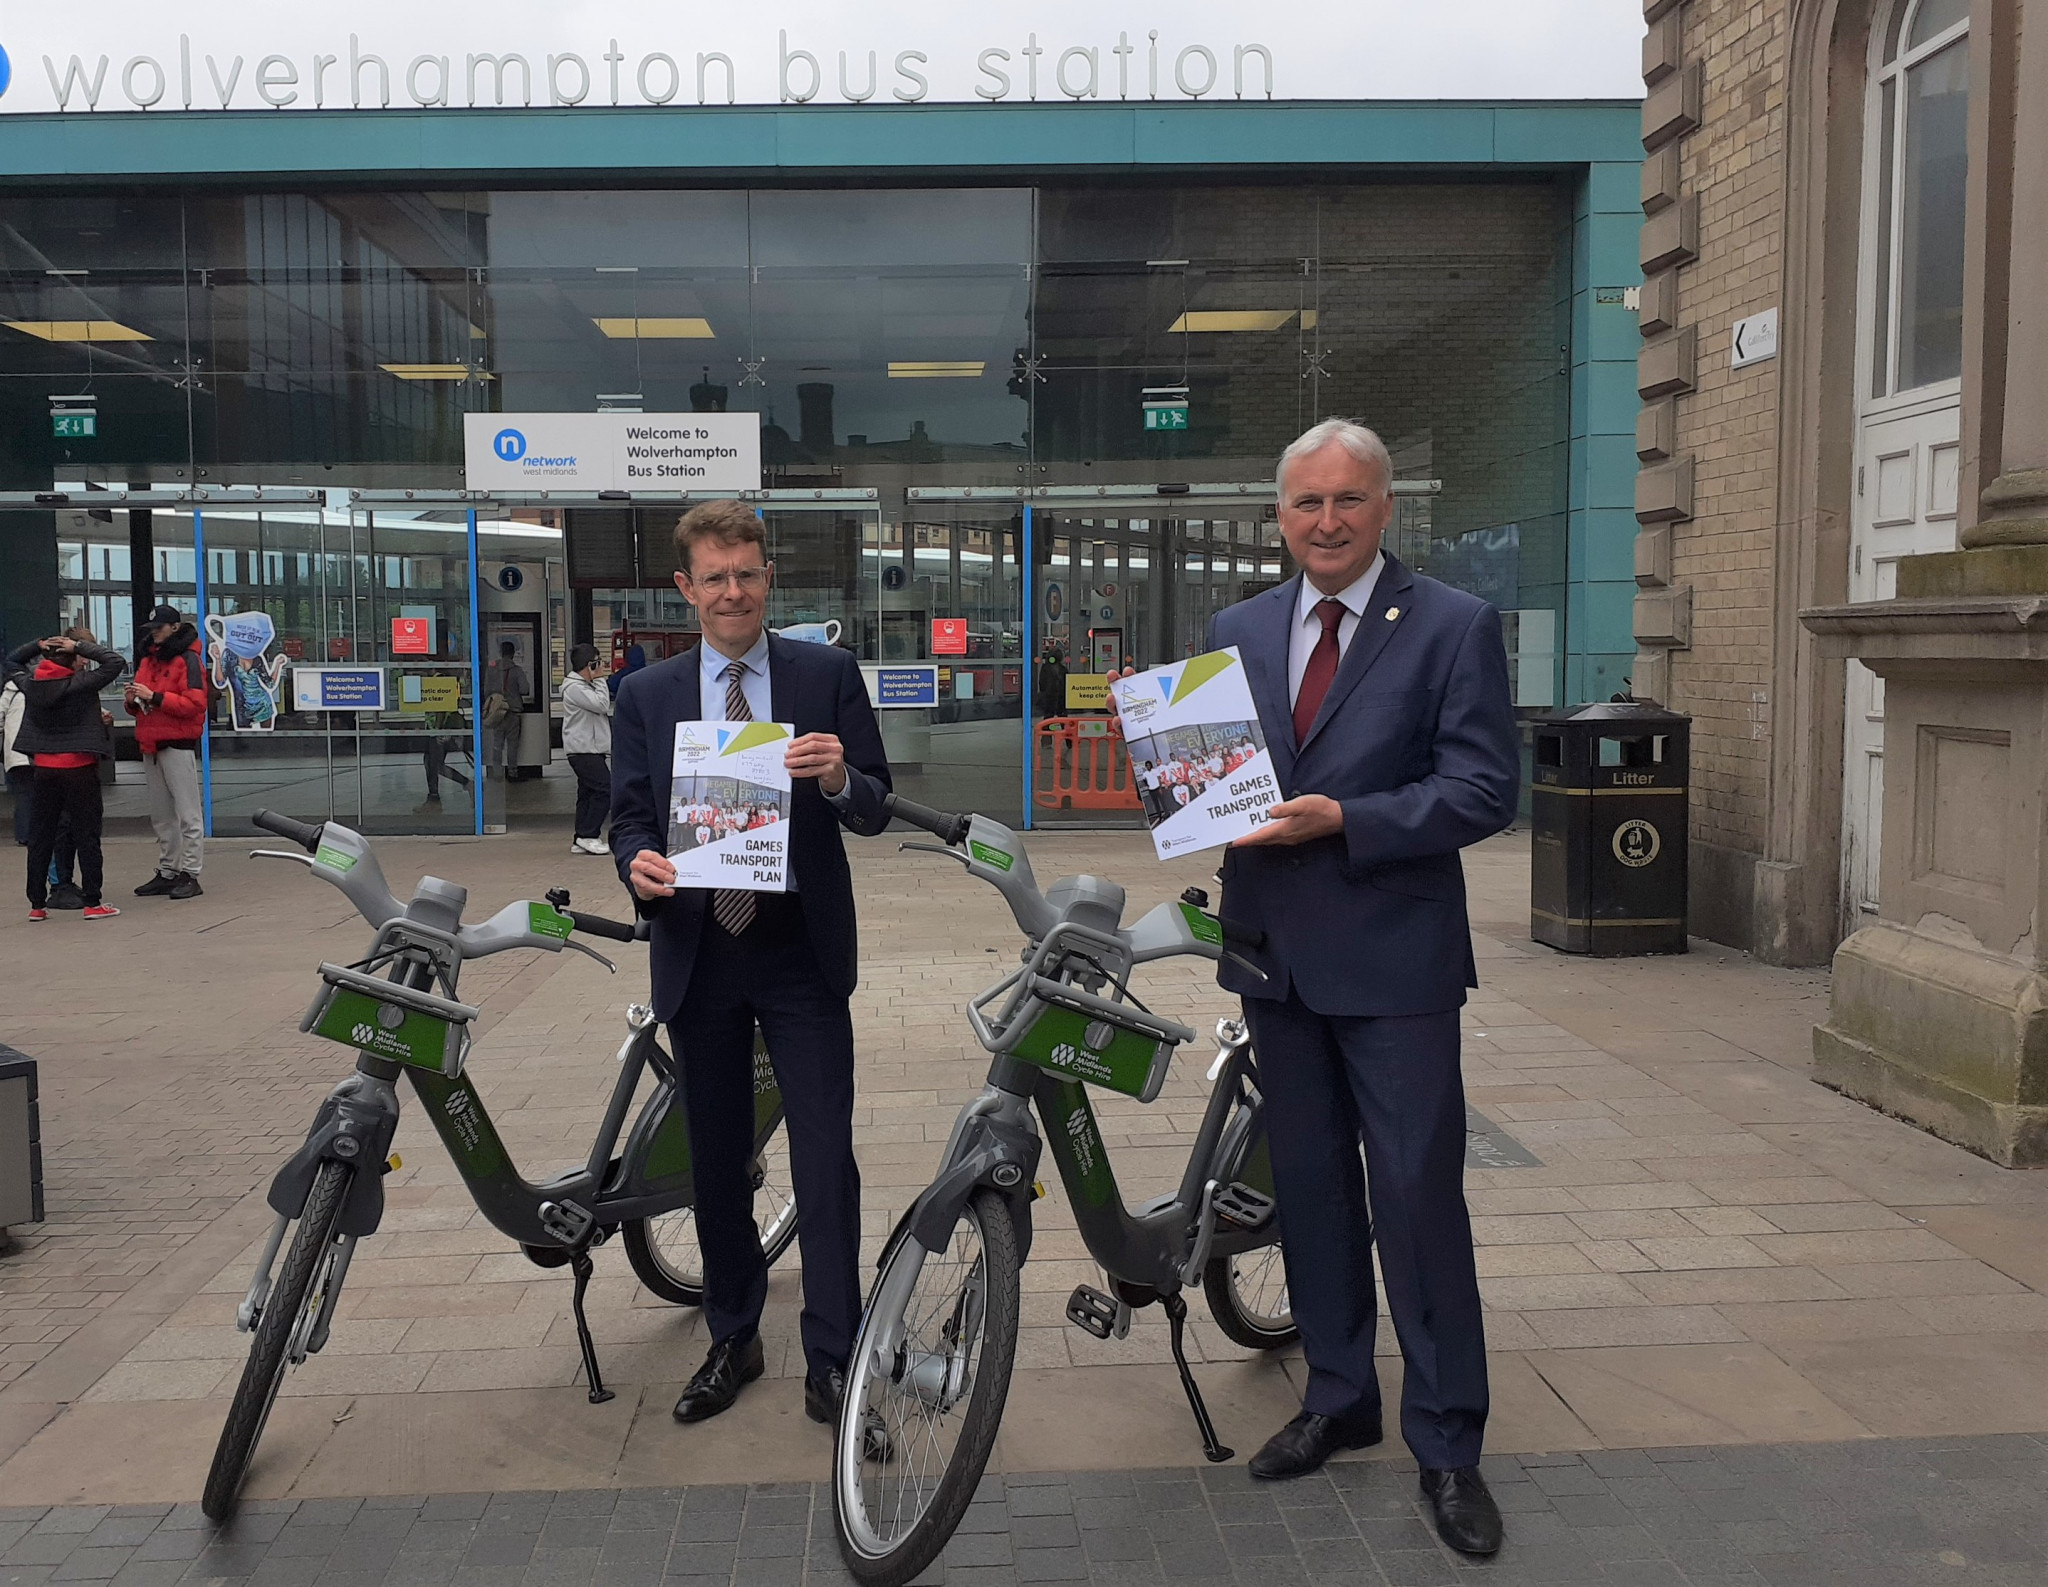 Draft transport plan approved for Birmingham 2022 Commonwealth Games